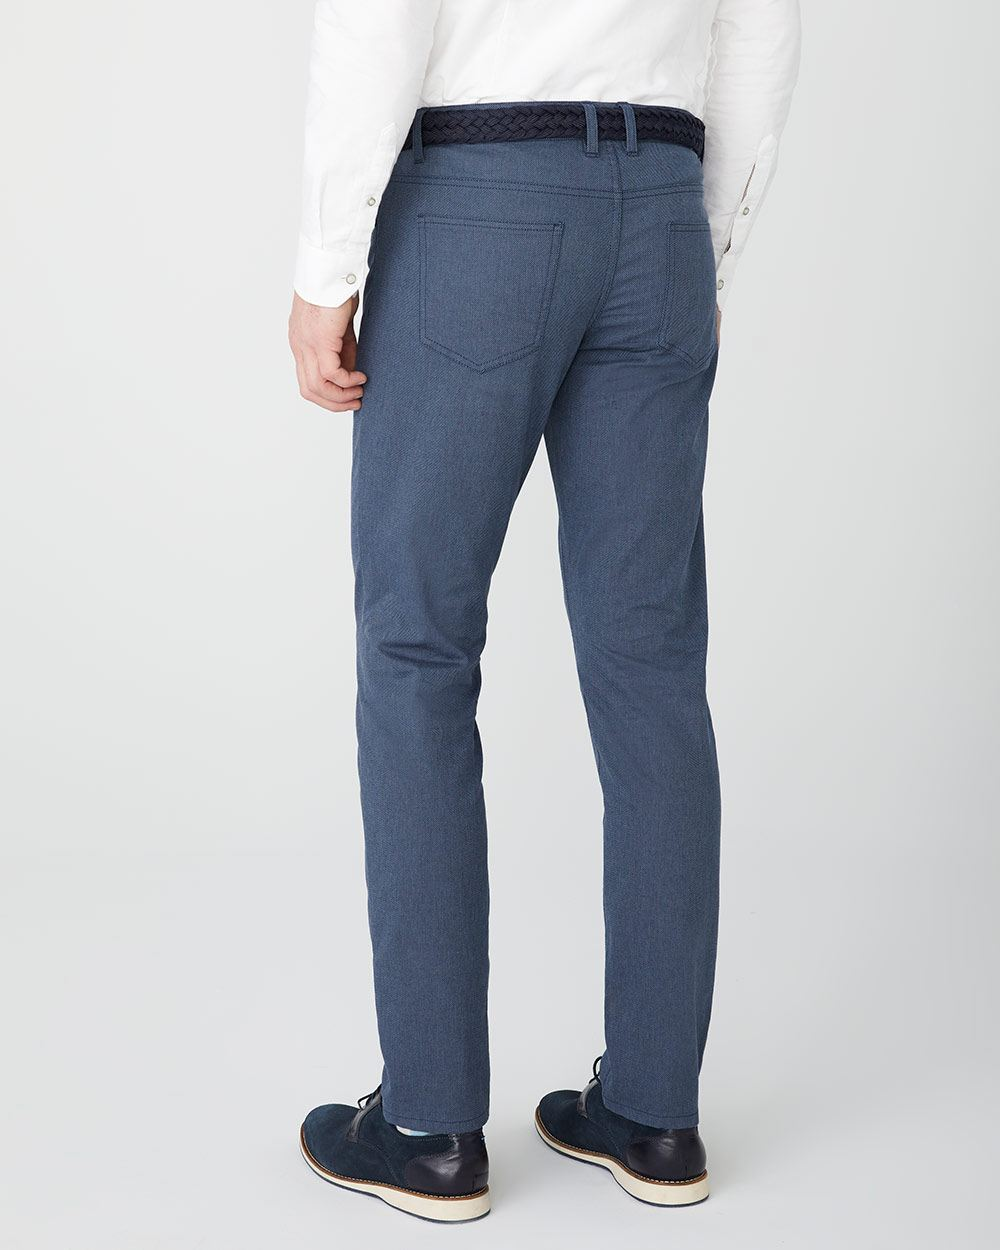 Slim fit Textured 5-pocket pant - 30''